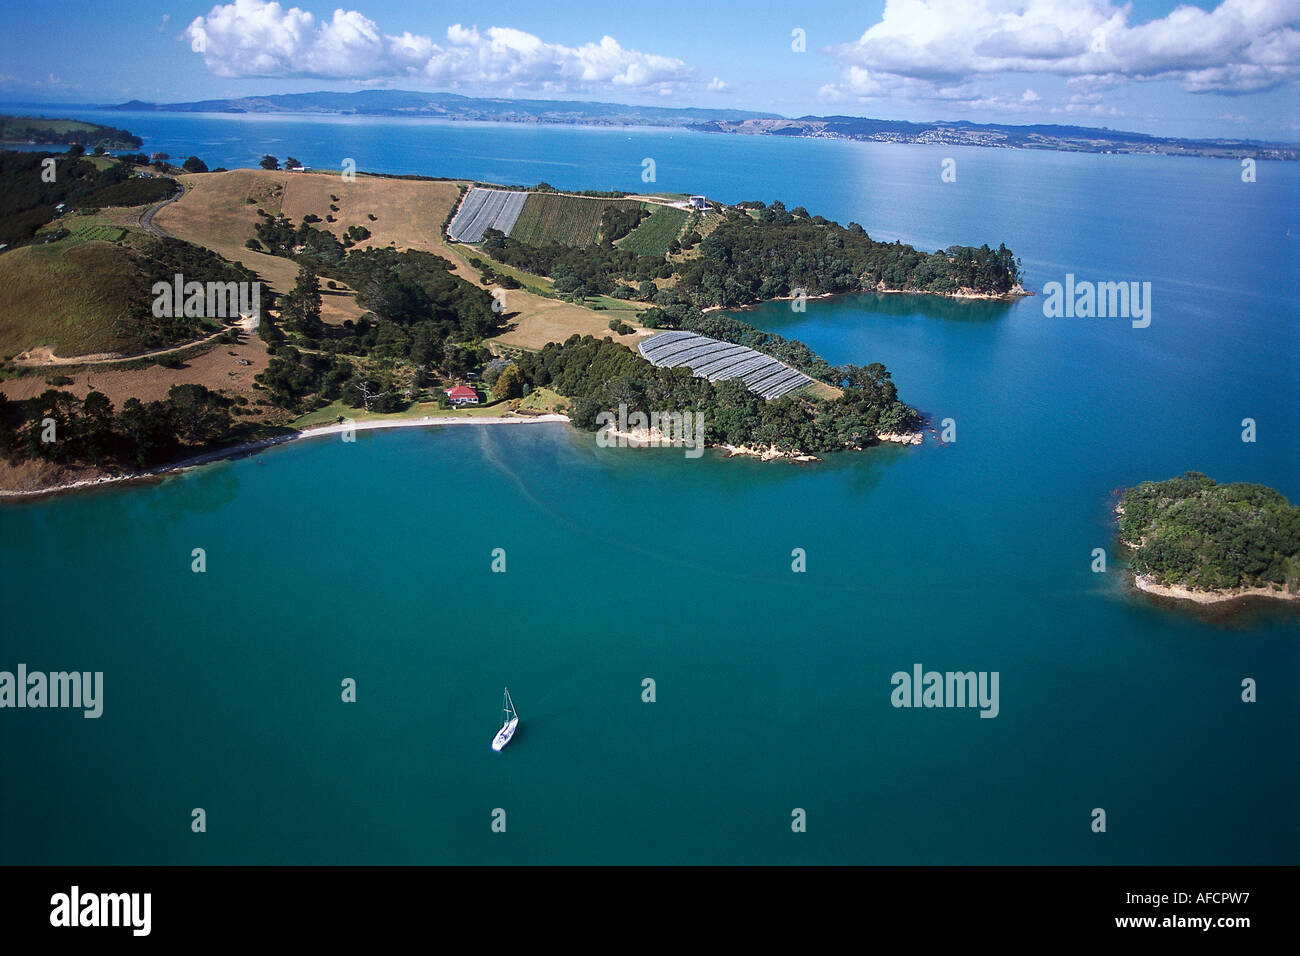 Aerial Photo, Waiheke Island, Hauraki Gulf Near Auckland, New Zealand - Stock Image